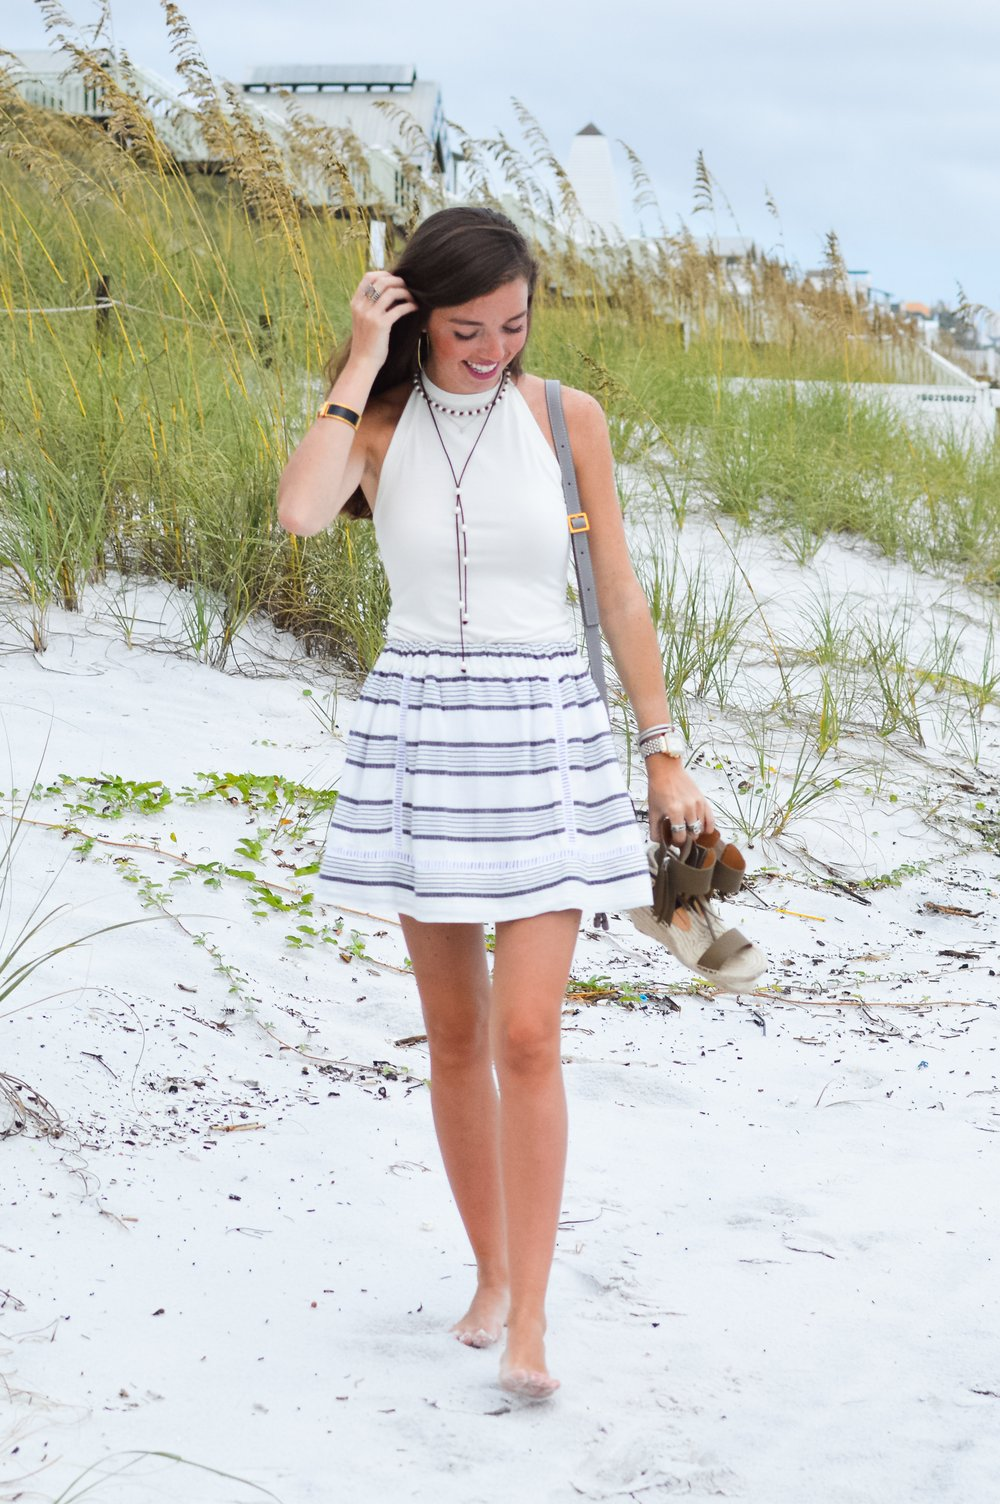 fashion blogger lcb style seaside florida rachel pally  (7 of 11).jpg